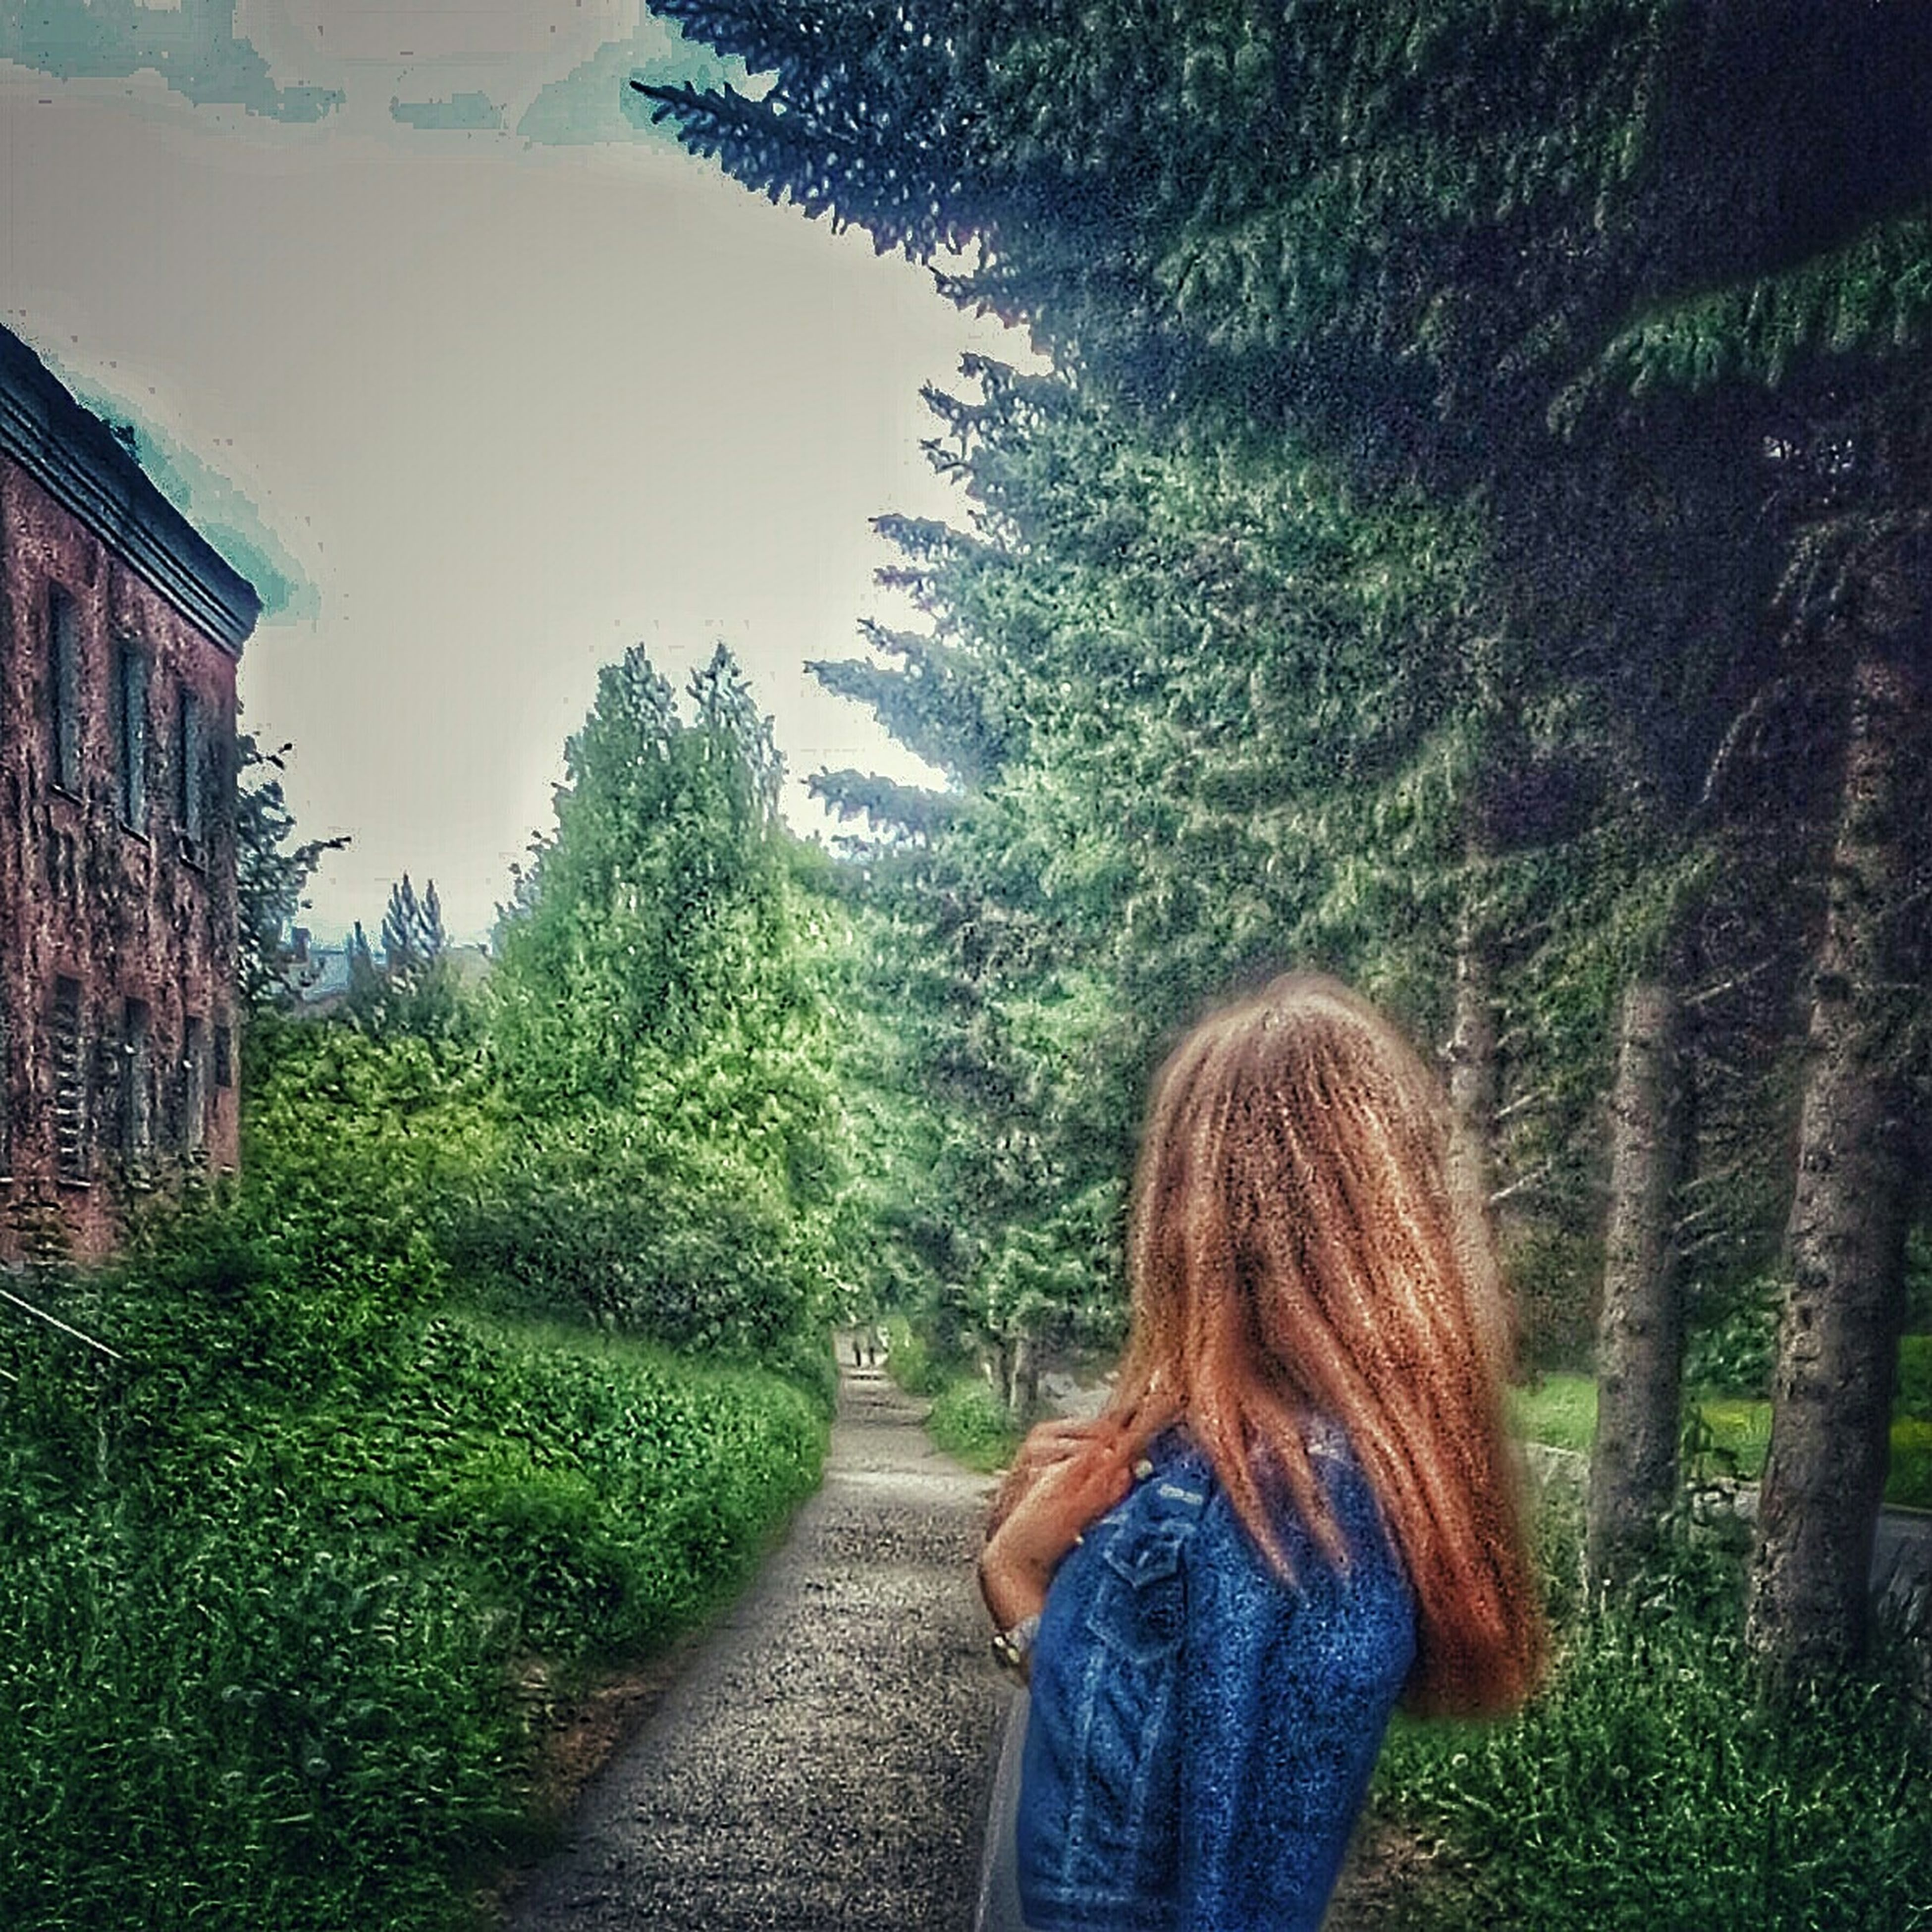 tree, long hair, one person, rear view, real people, green color, grass, outdoors, girls, lifestyles, plant, day, nature, standing, women, blond hair, architecture, people, sky, young adult, adult